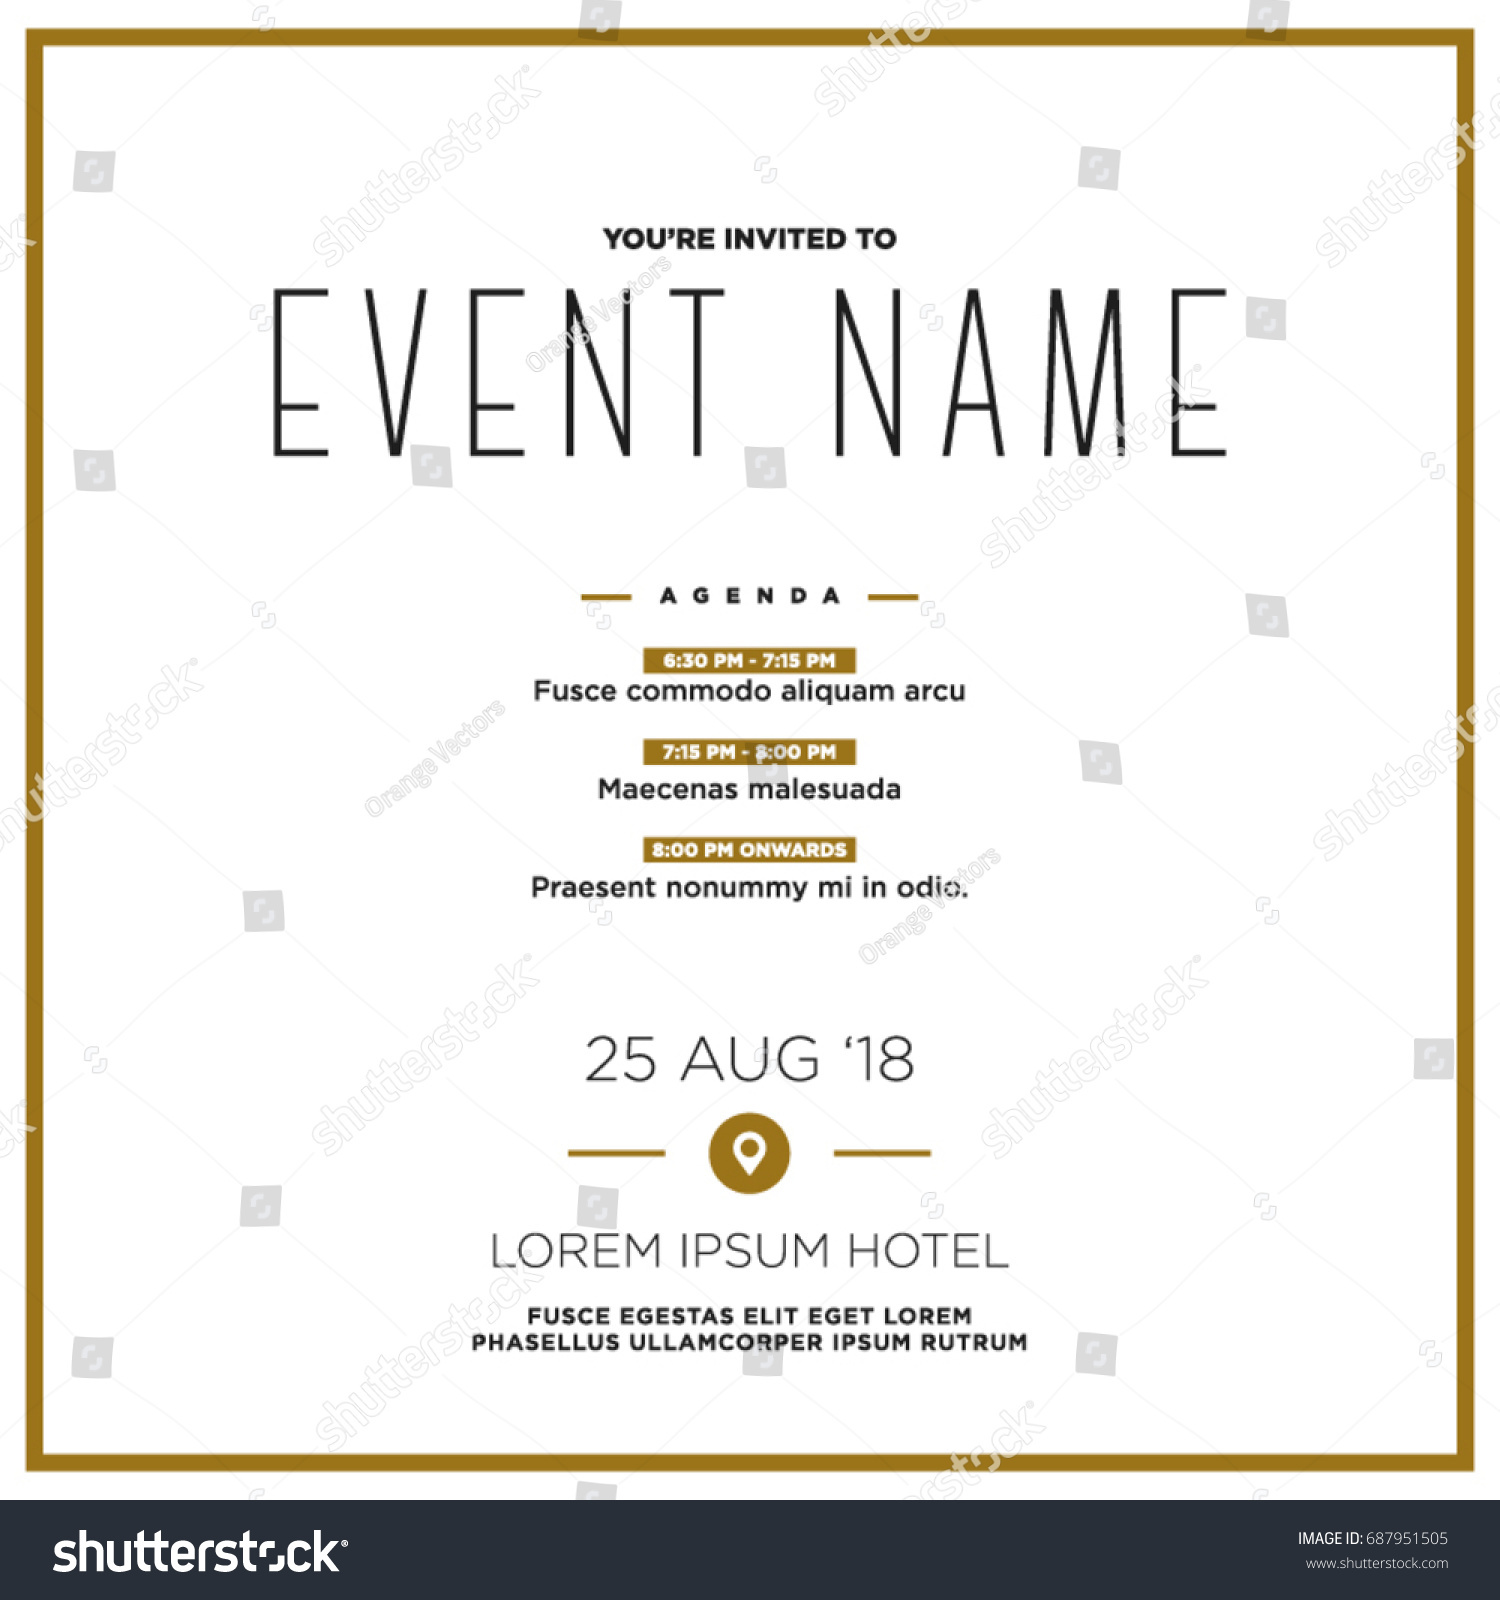 Event invitation template agenda venue date stock vector 687951505 event invitation template with agenda venue and date details pronofoot35fo Choice Image